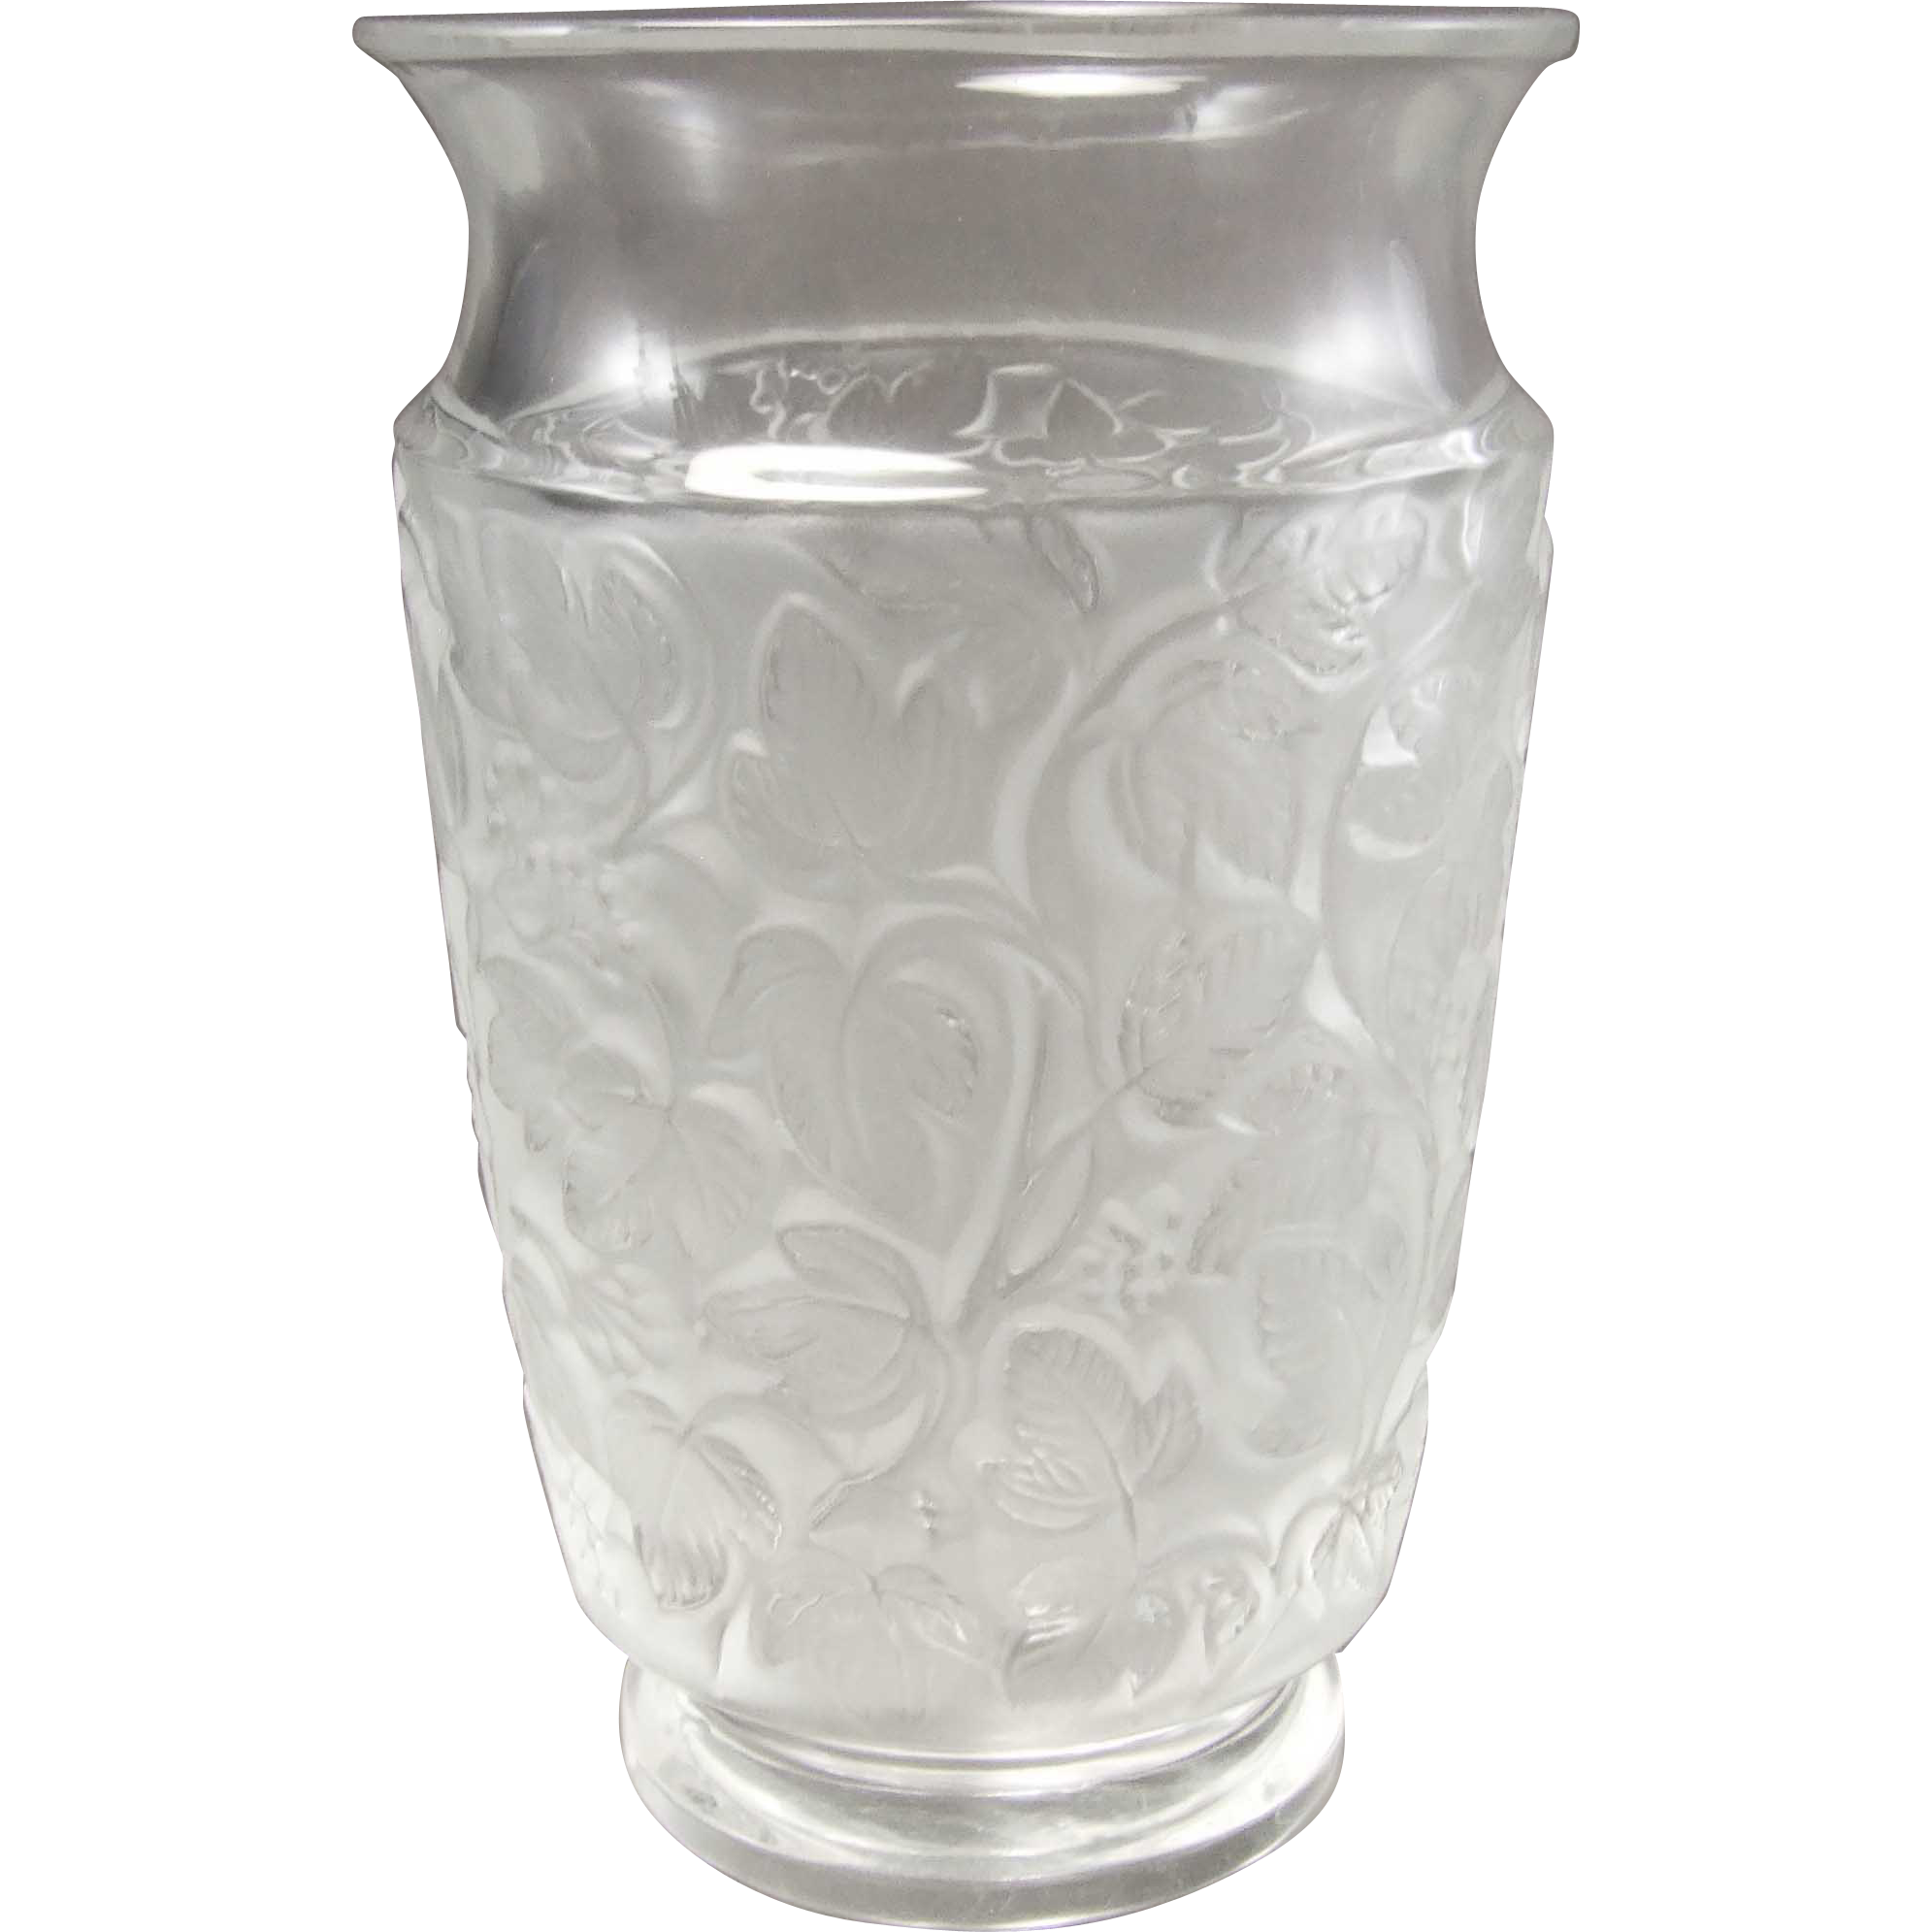 Lalique deauville crystal vase from greencountry on ruby lane for Lalique vase